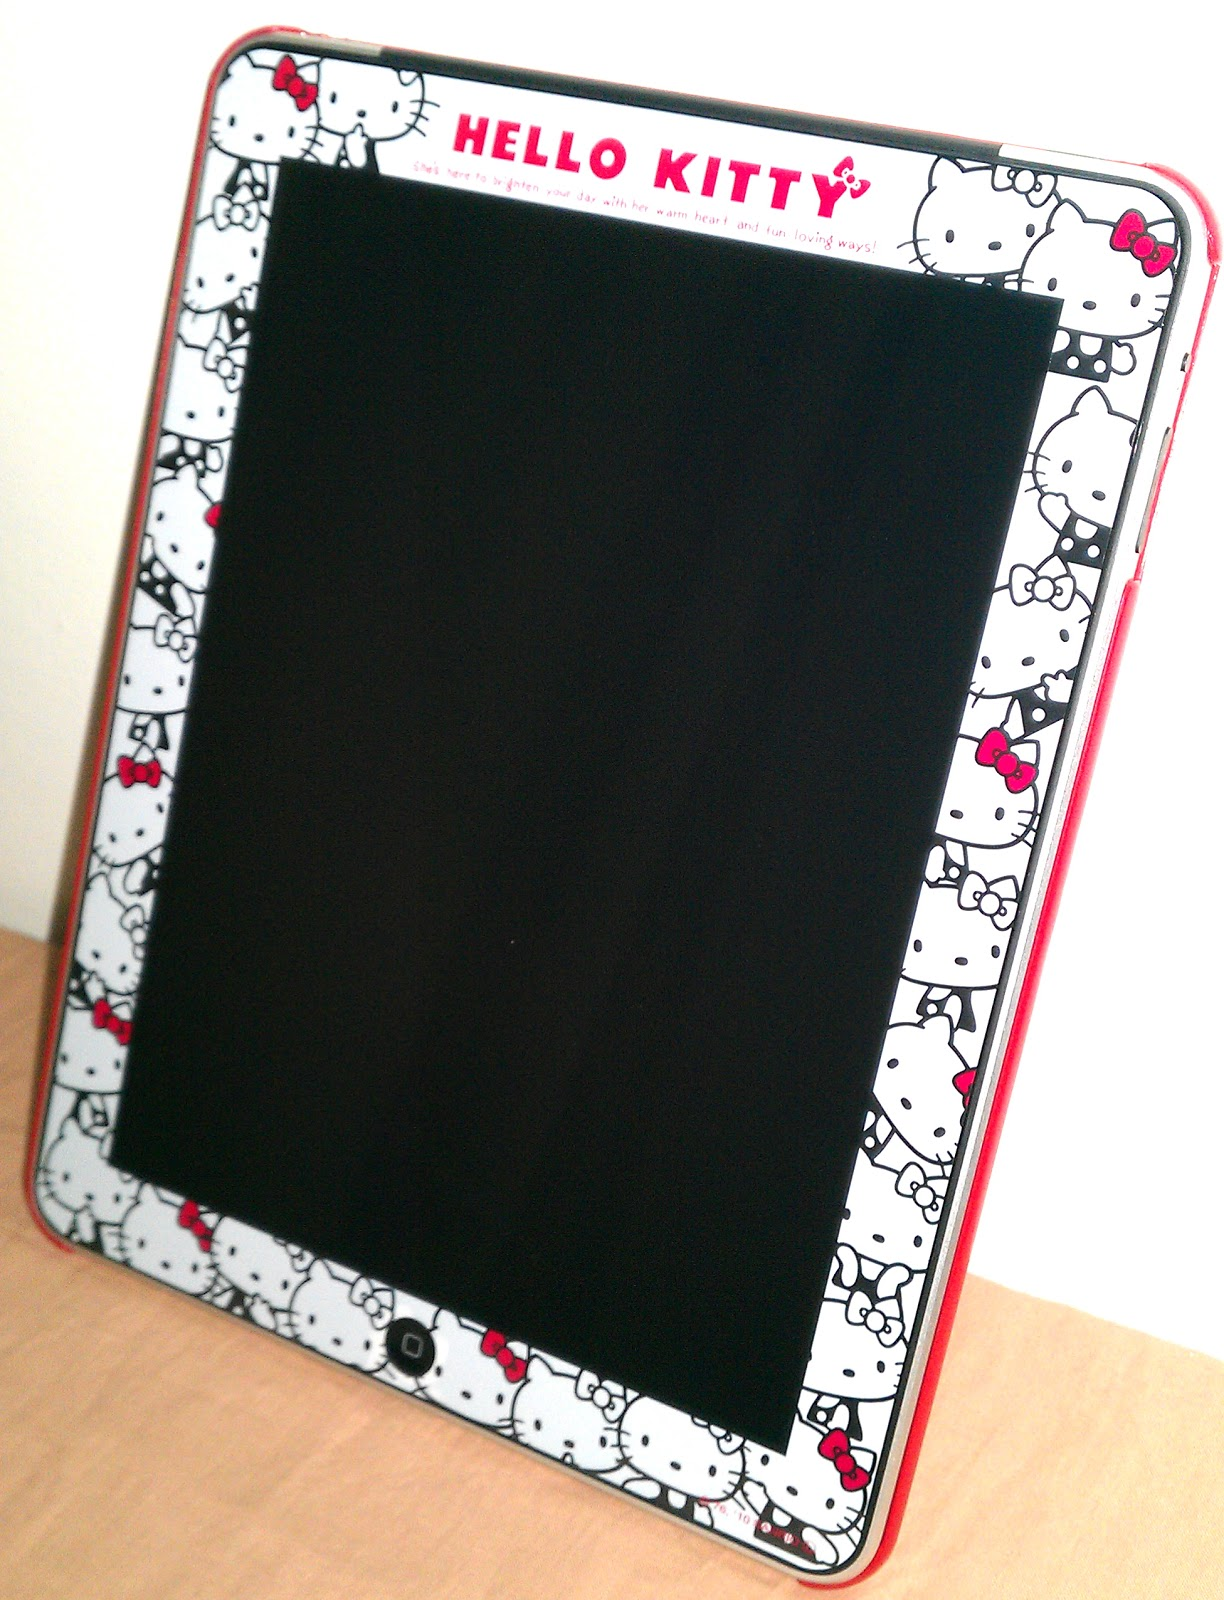 http://2.bp.blogspot.com/-hXfZuKh4J7E/Th2q46f_wVI/AAAAAAAADWw/hrk9hea_ha0/s1600/Hello+Kitty+iPad+Cover+%2526+Screen+Protector+5.jpg